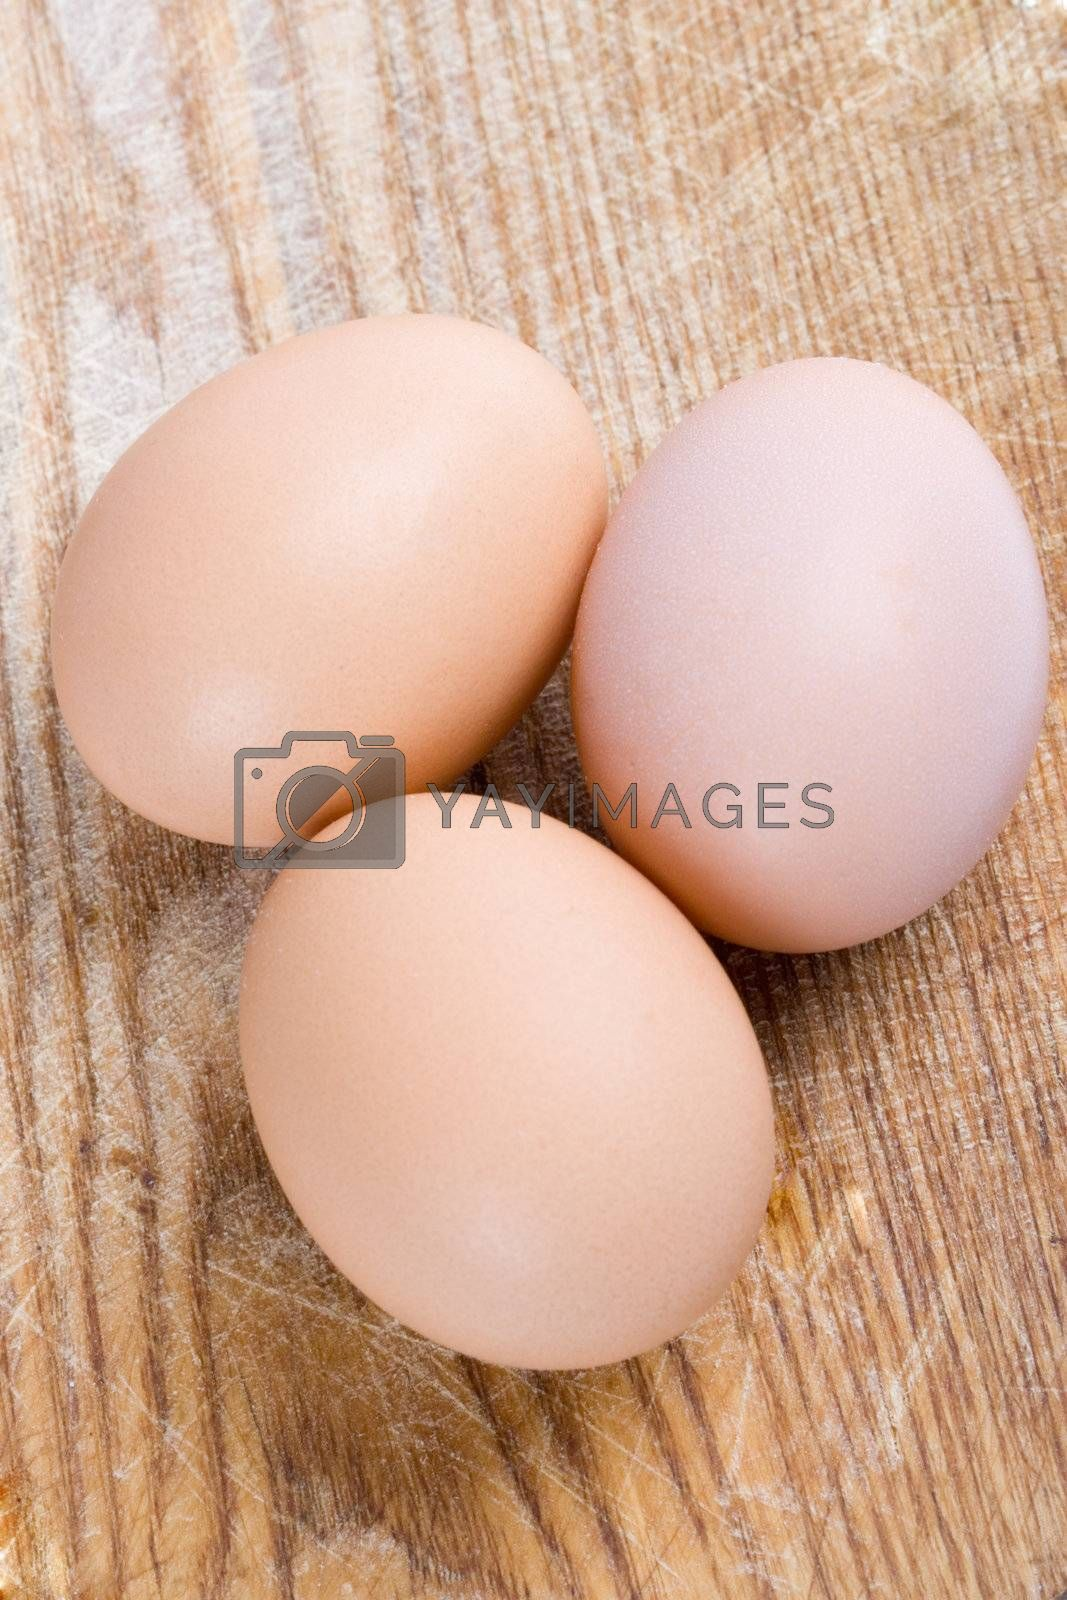 Royalty free image of three brown eggs by marylooo